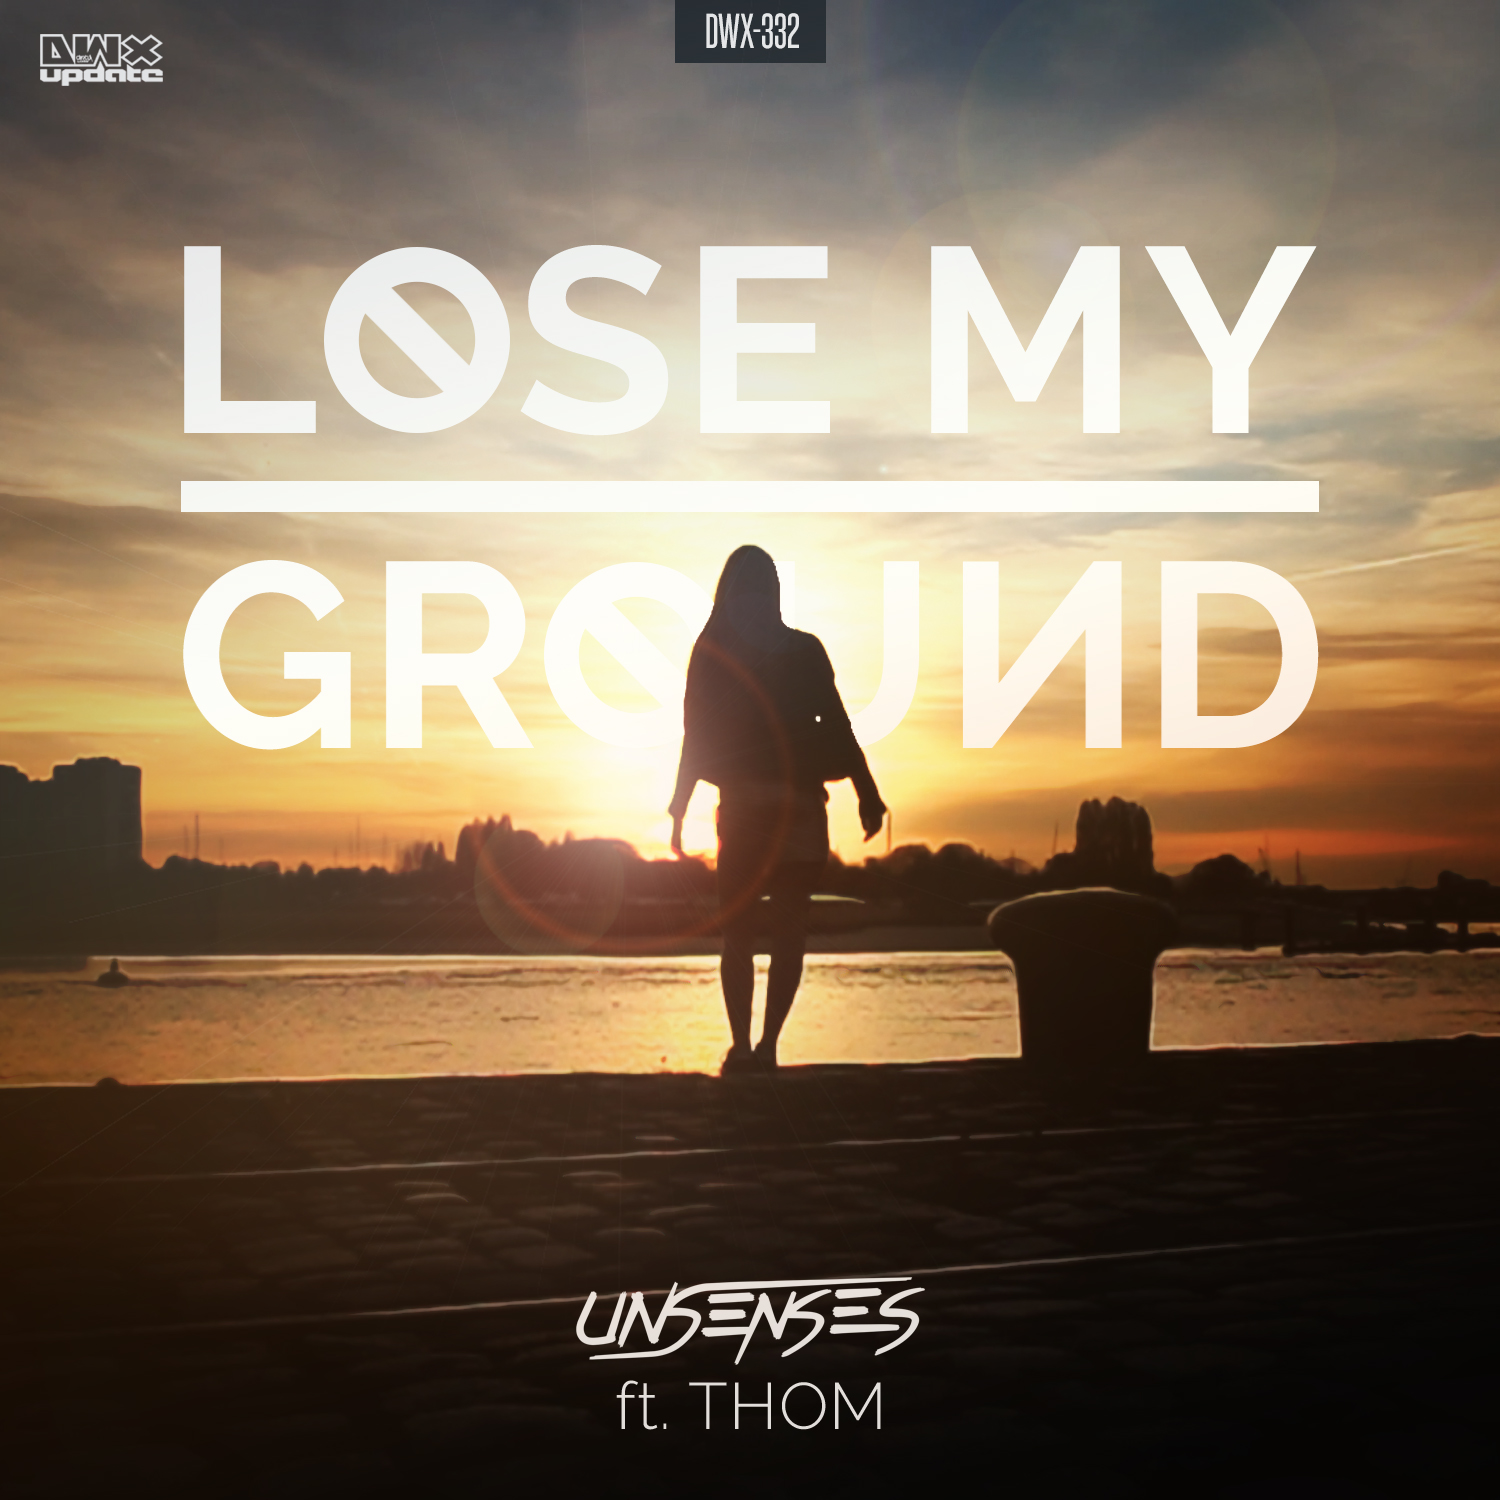 Unsenses ft. Thom - Lose My Ground [DIRTY WORKZ] DWX332